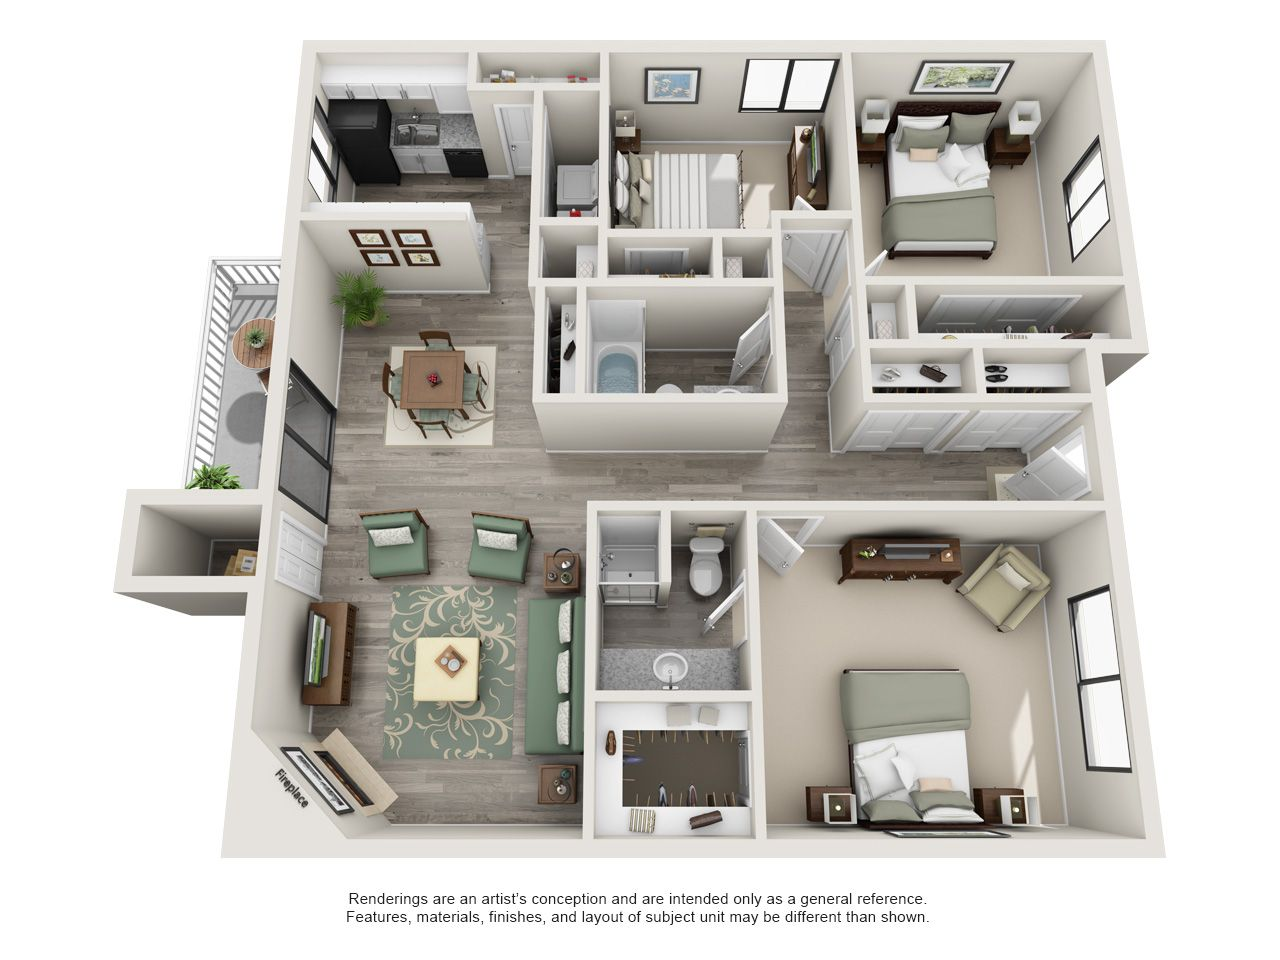 1 2 And 3 Bedroom Plans Hearthstone Apartments Steadfast Apartment Floorplans Rental C Sims House Plans Small House Design Plans Mansion Floor Plan